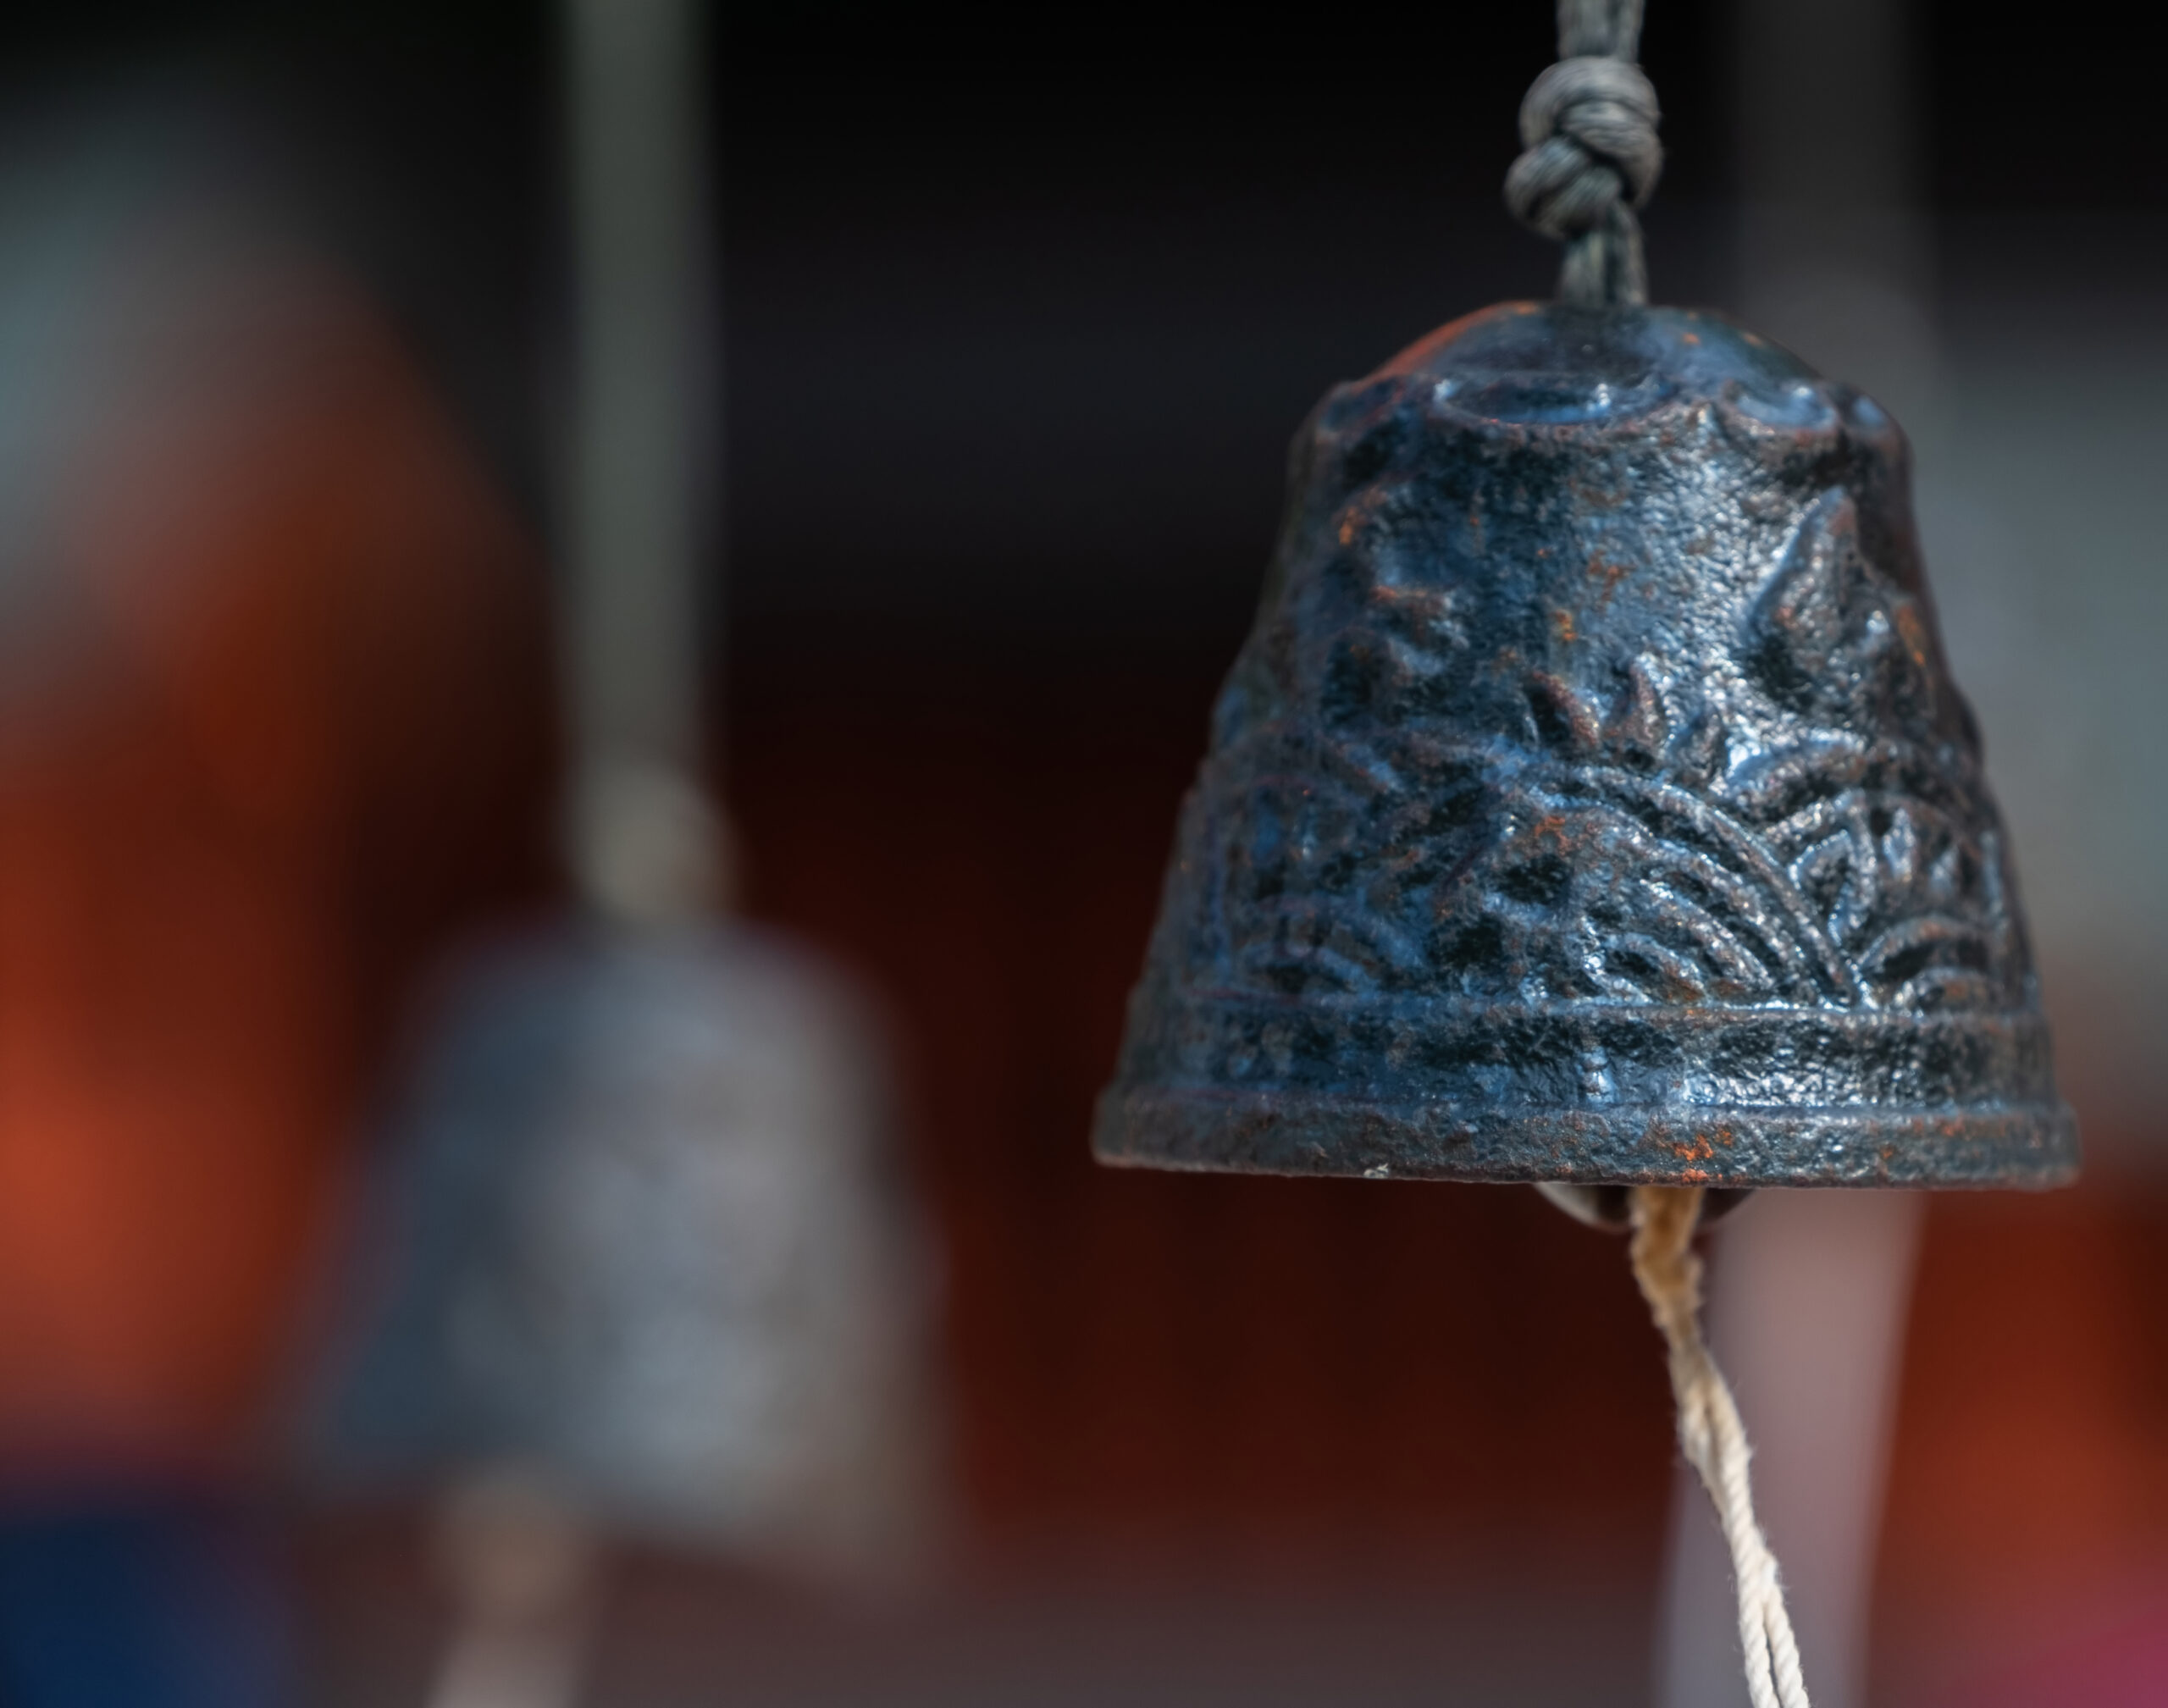 The temple bells are rung 108 times to welcome the New Year in Japan!